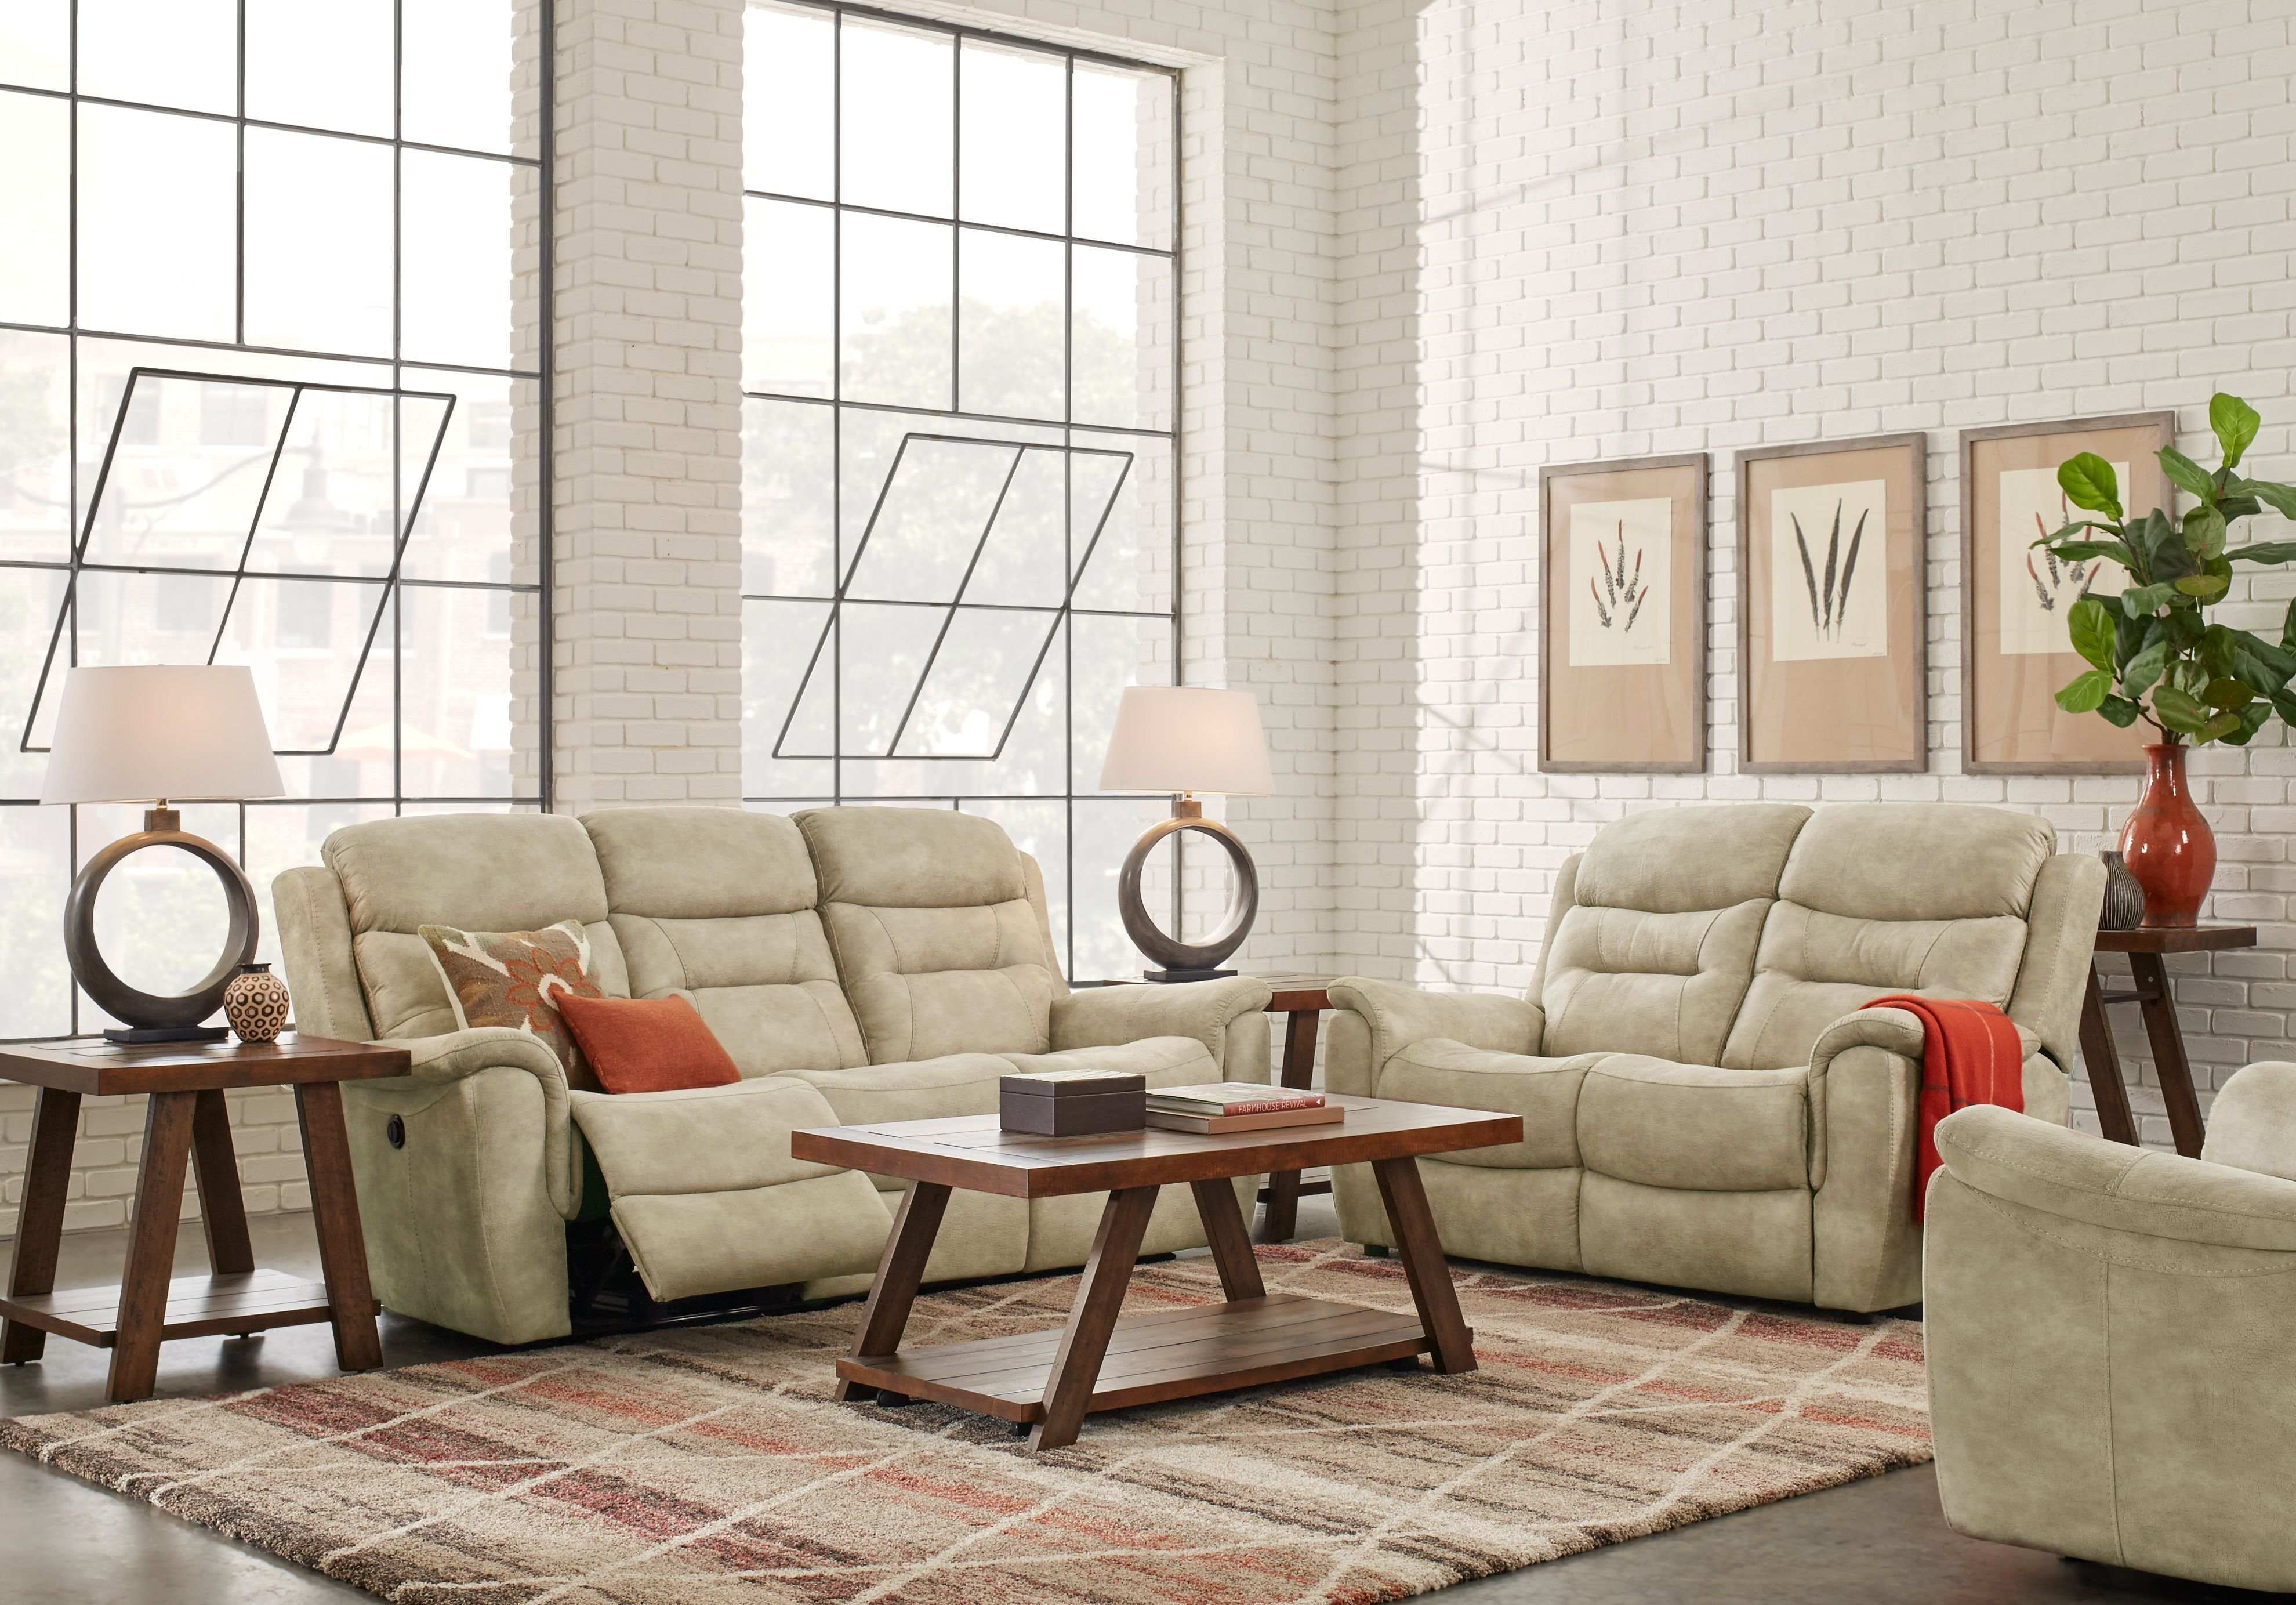 Admirable Halton Hills Sand 3 Pc Living Room With Reclining Sofa In Gmtry Best Dining Table And Chair Ideas Images Gmtryco